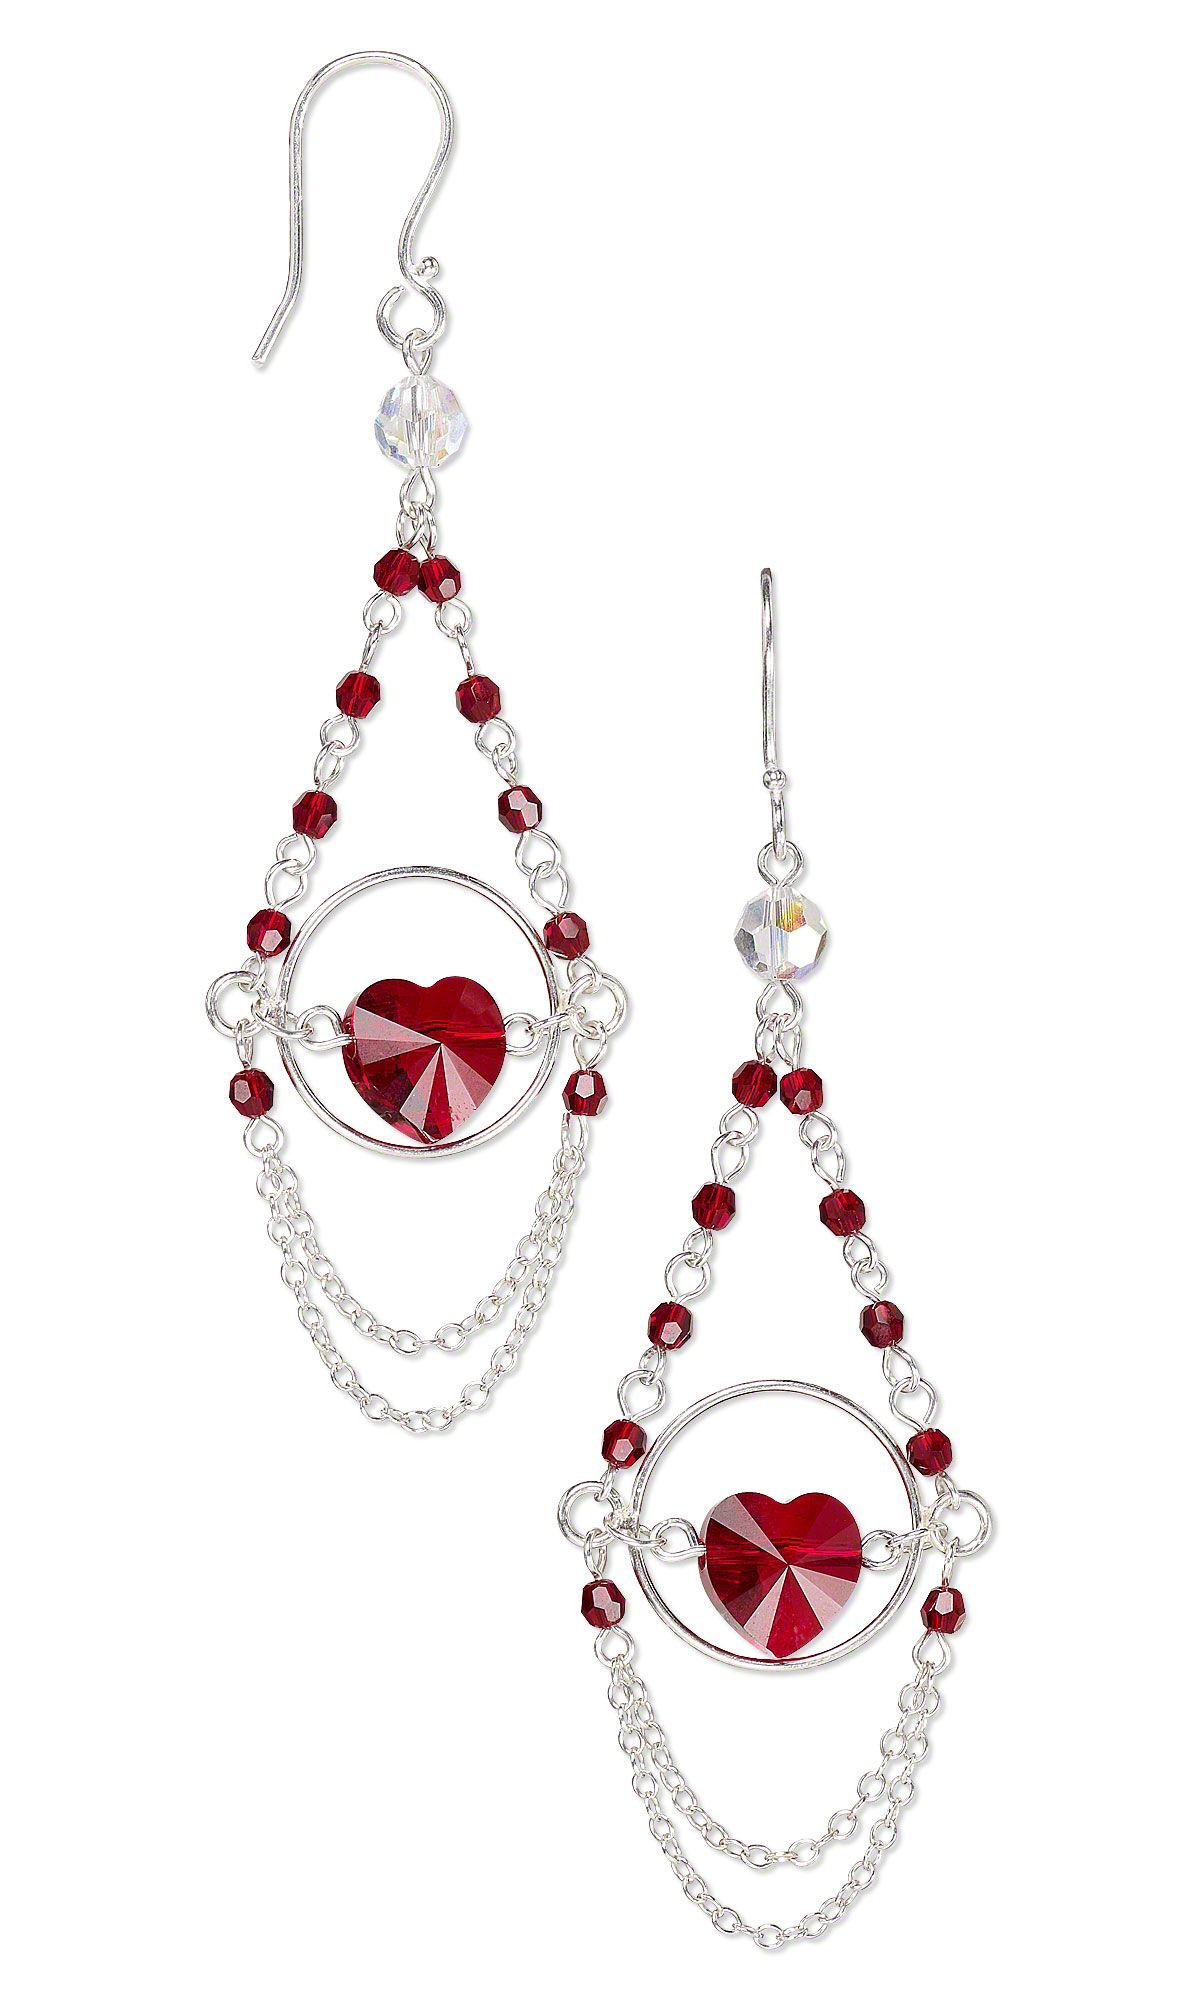 Gallery Of Designs Fire Mountain Gems and Beads | Jewelry